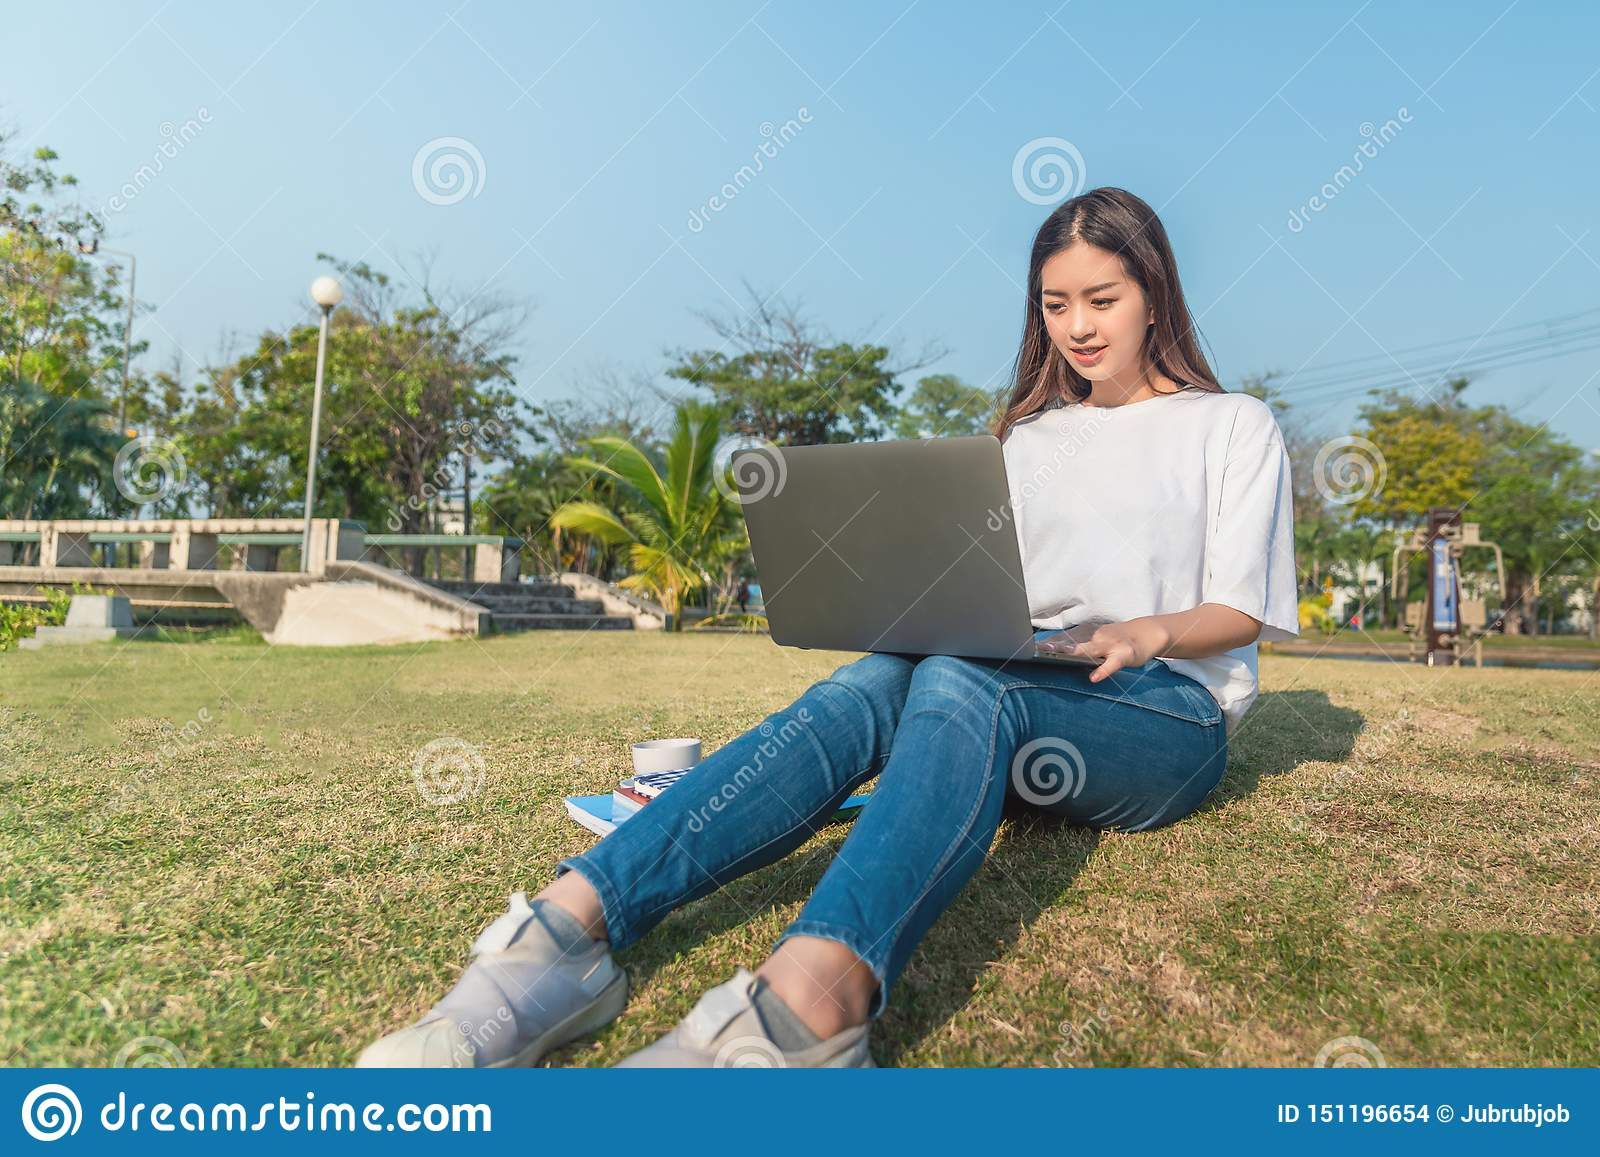 Beautiful young smiling woman using tablet in public park